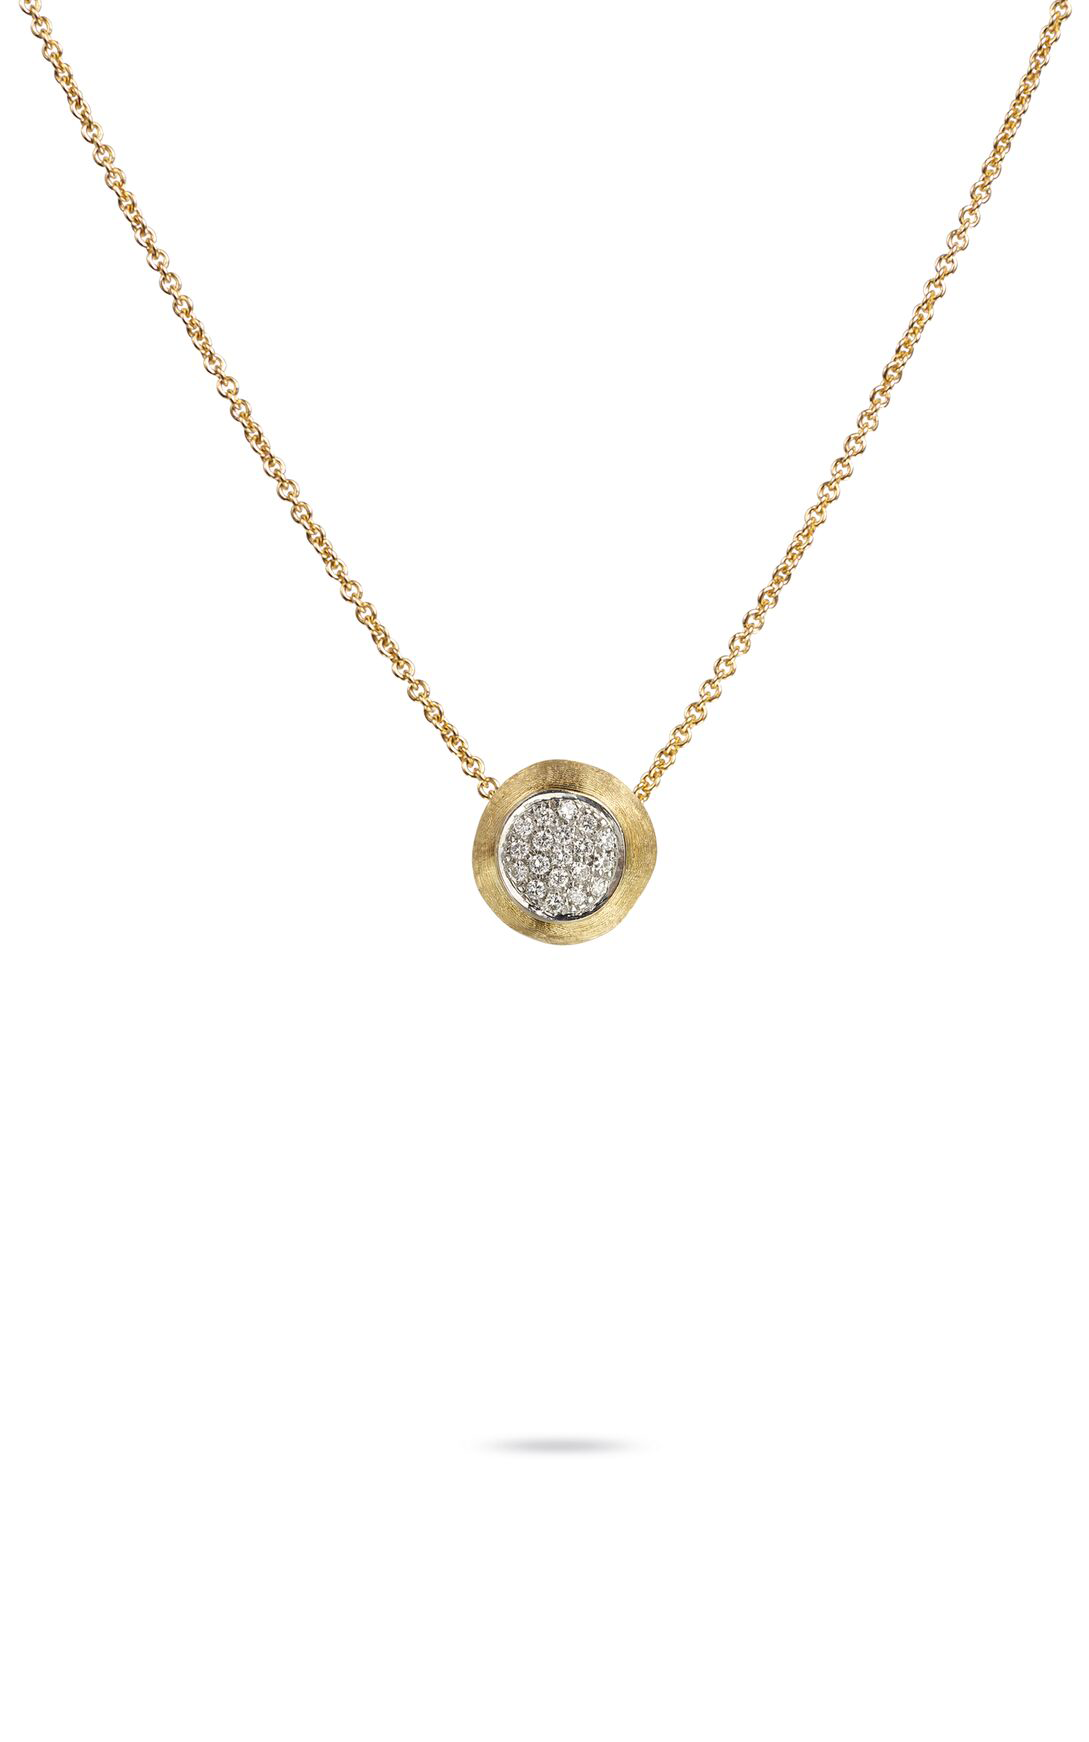 Marco Bicego Delicati Necklace CB1809BYW product image